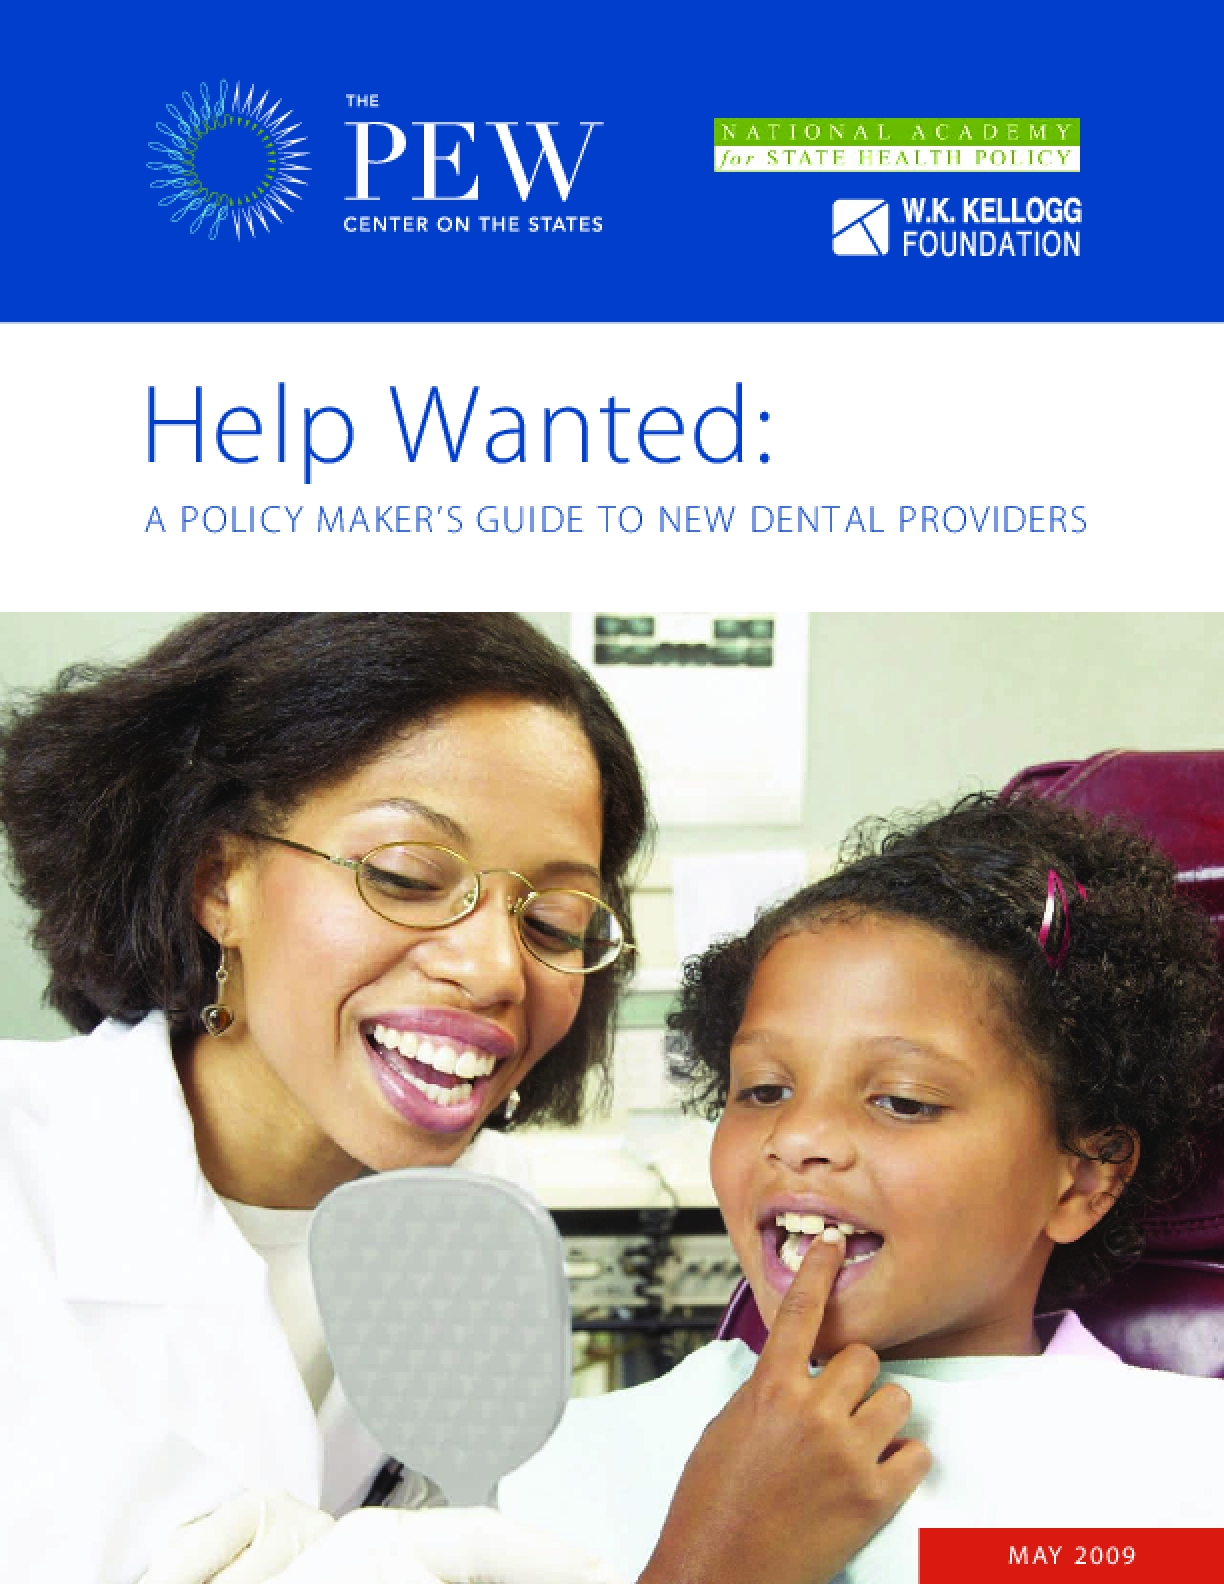 Help Wanted: A Policy Maker's Guide to New Dental Providers (Full Report))